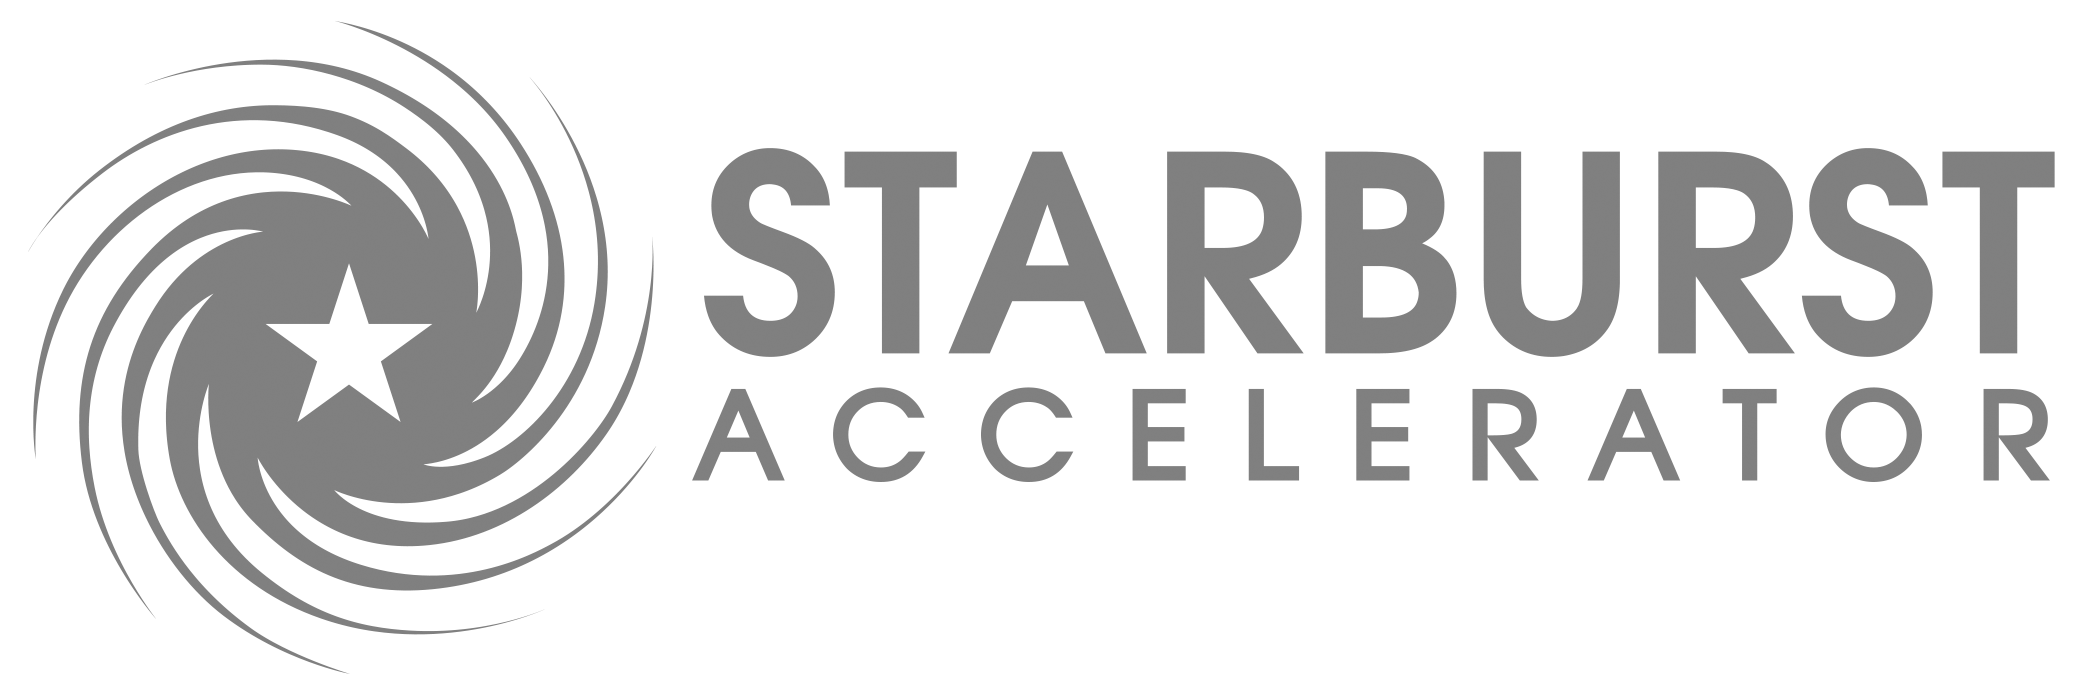 Starburst Accelerator_logo black and white